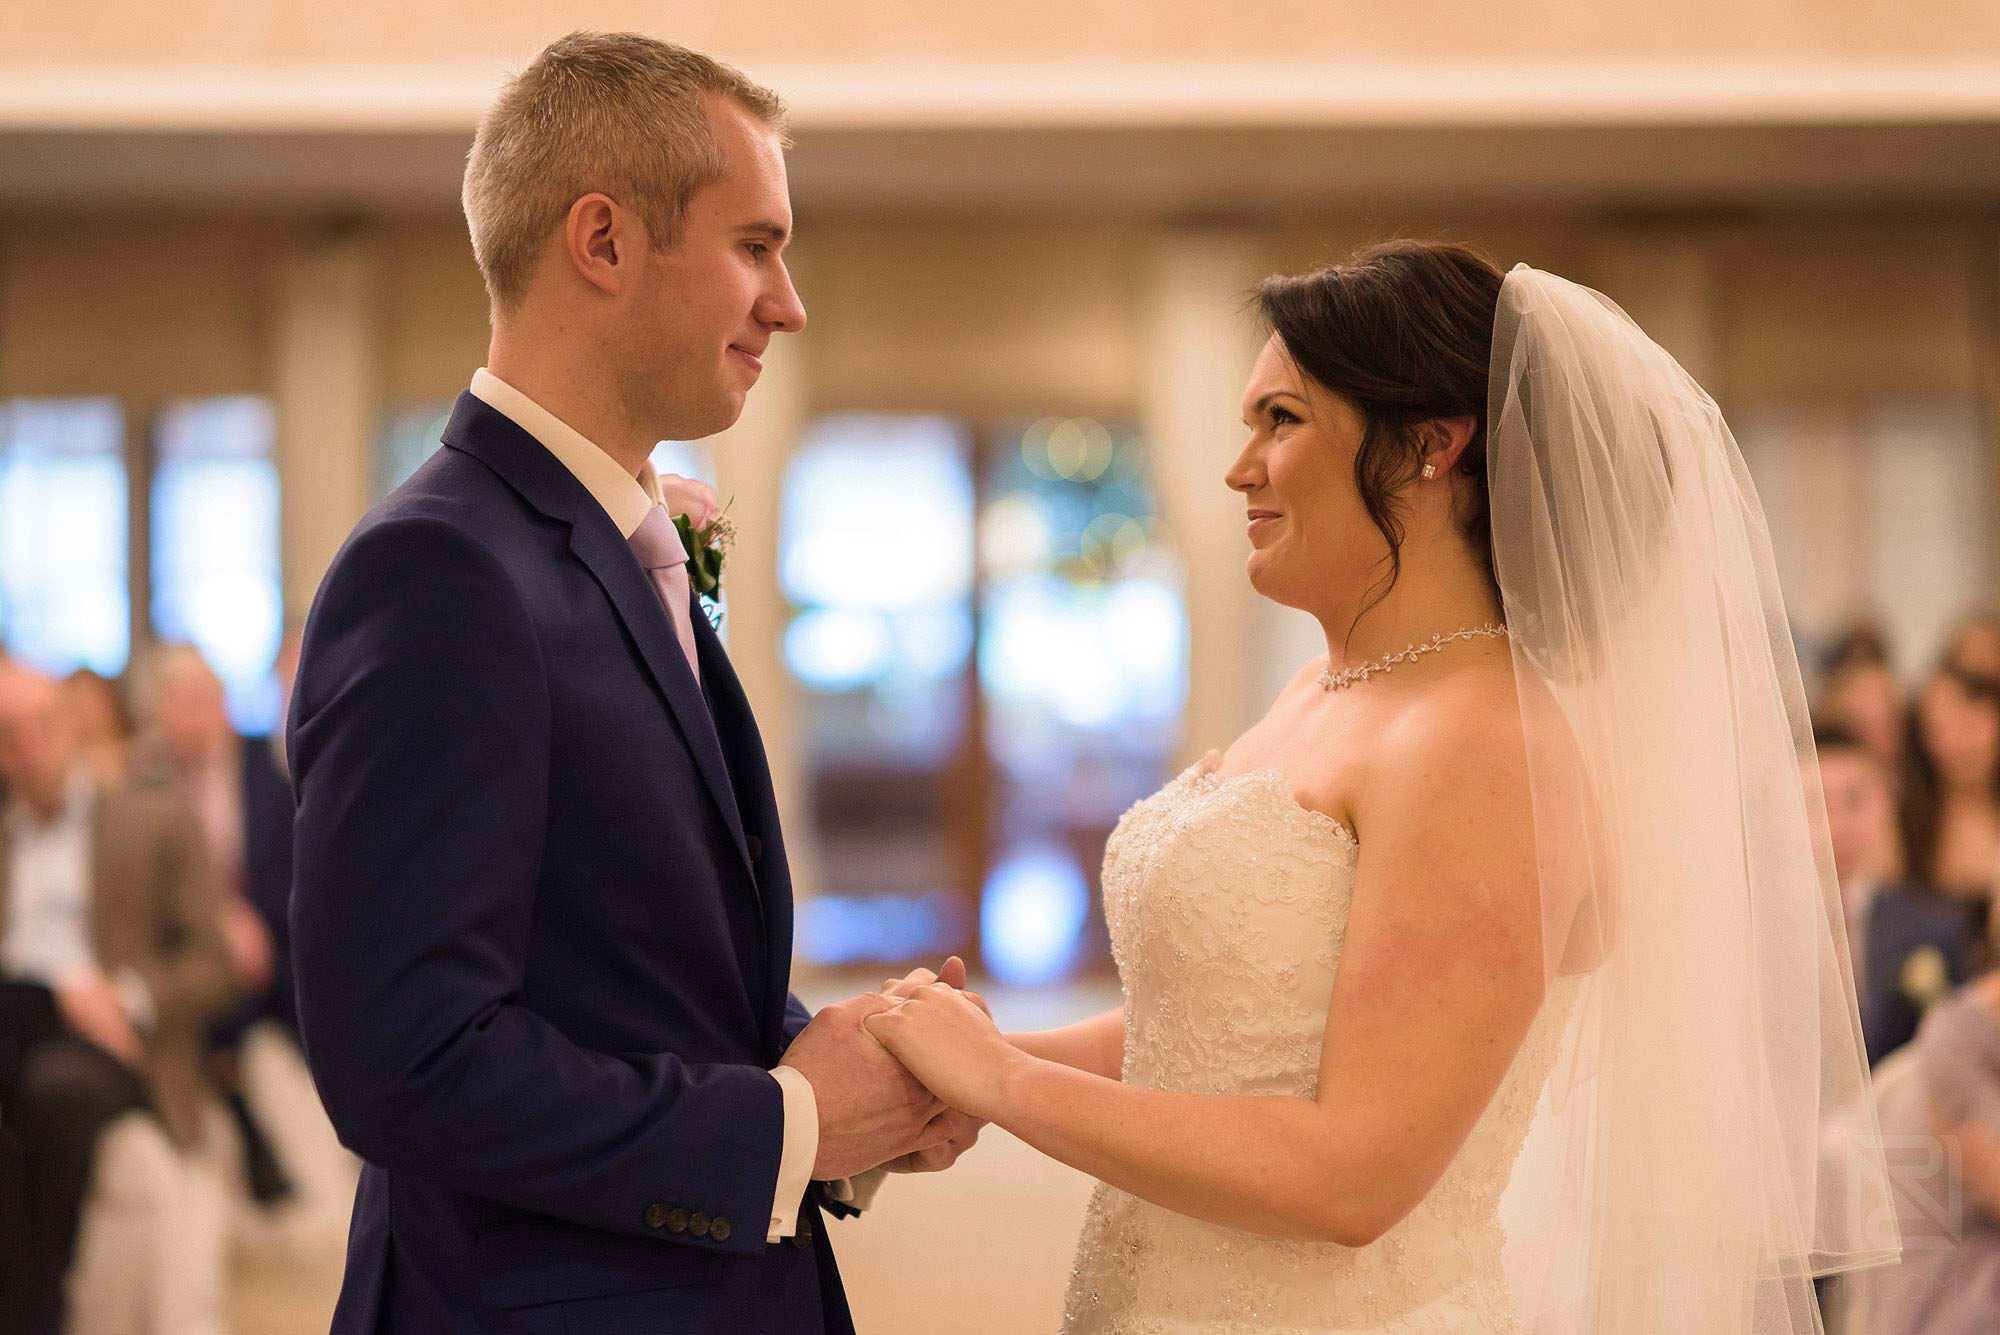 bride and groom looking at each other during wedding ceremony at Rowton Hall